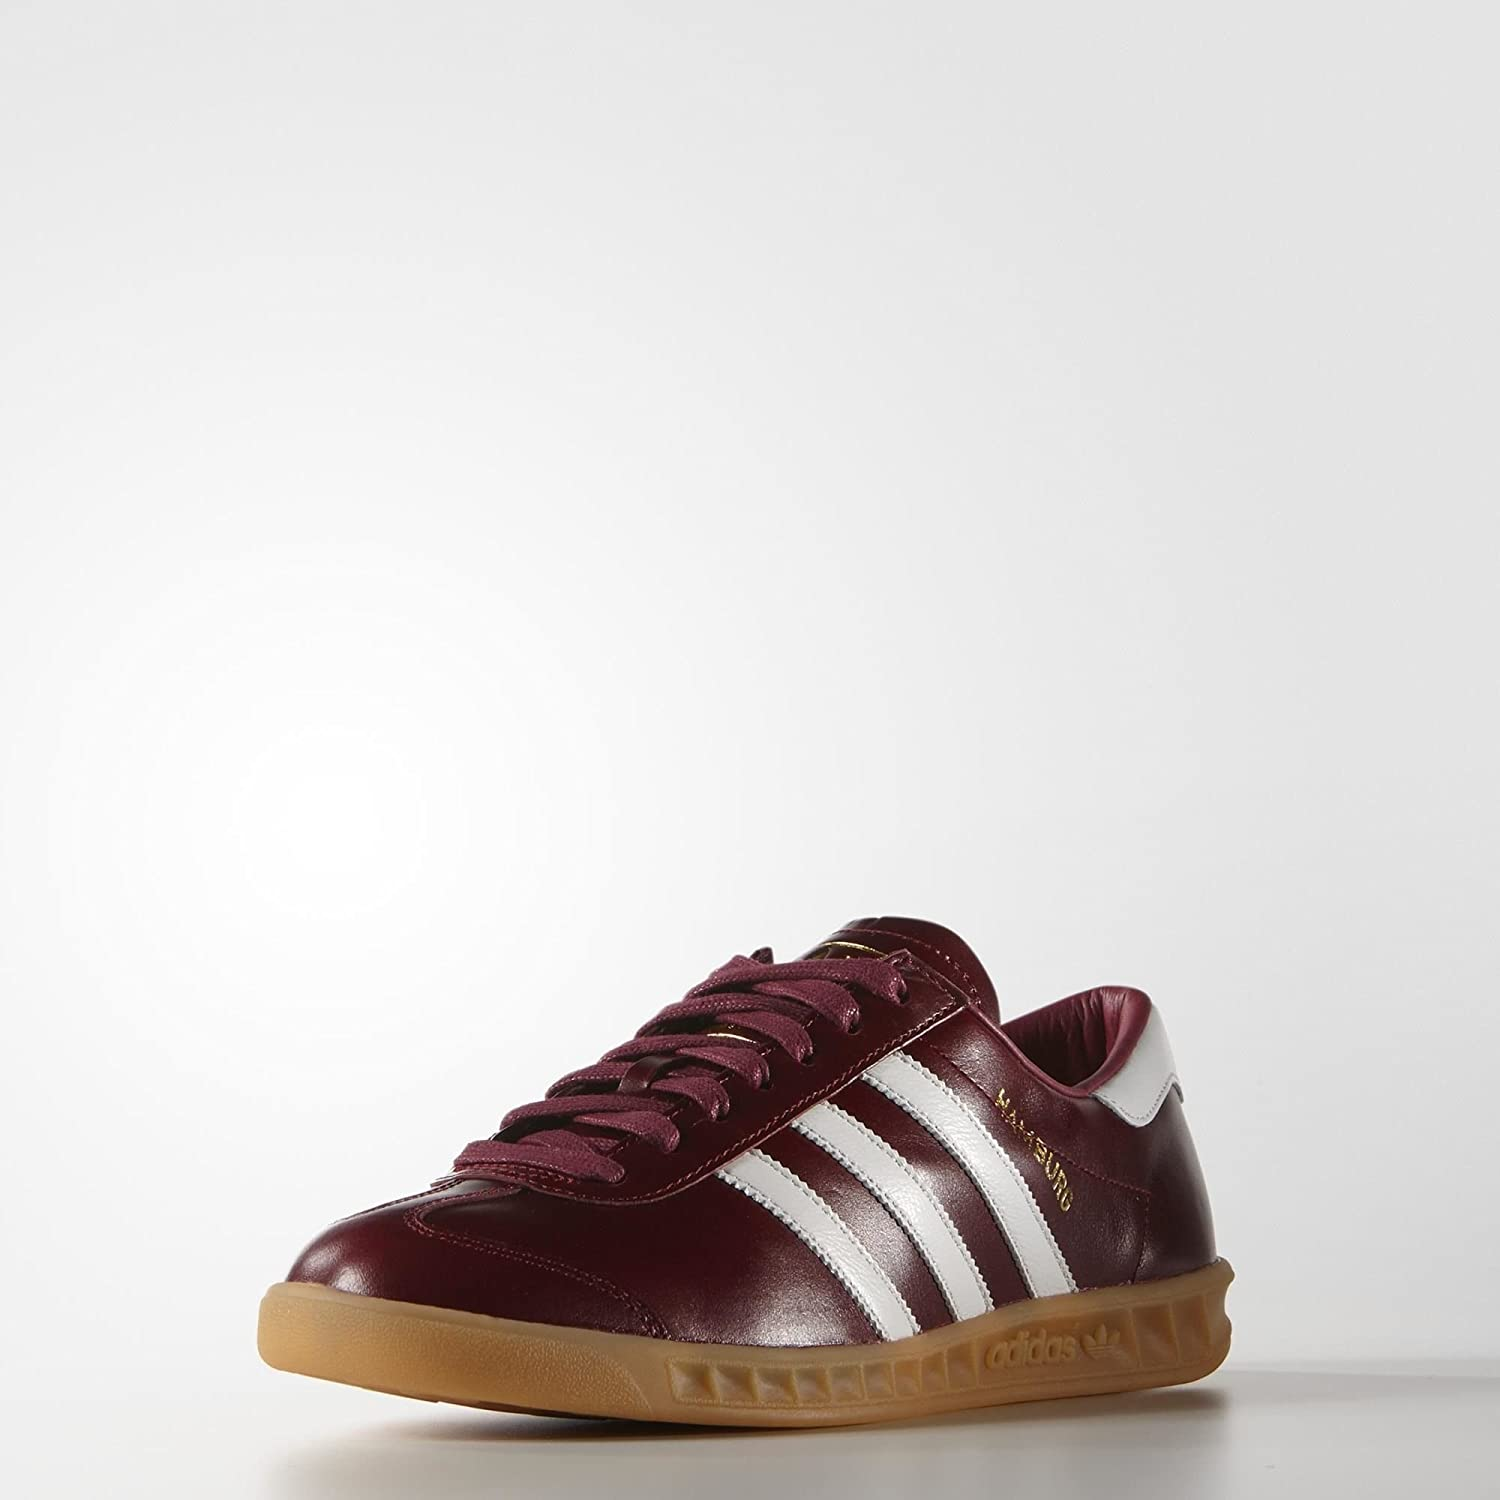 outlet store 82899 3862f Adidas Originals Hamburg MIG Made in Germany S31603 Burgundy Leather Mens  Shoes (size 9) Amazon.ca Shoes  Handbags